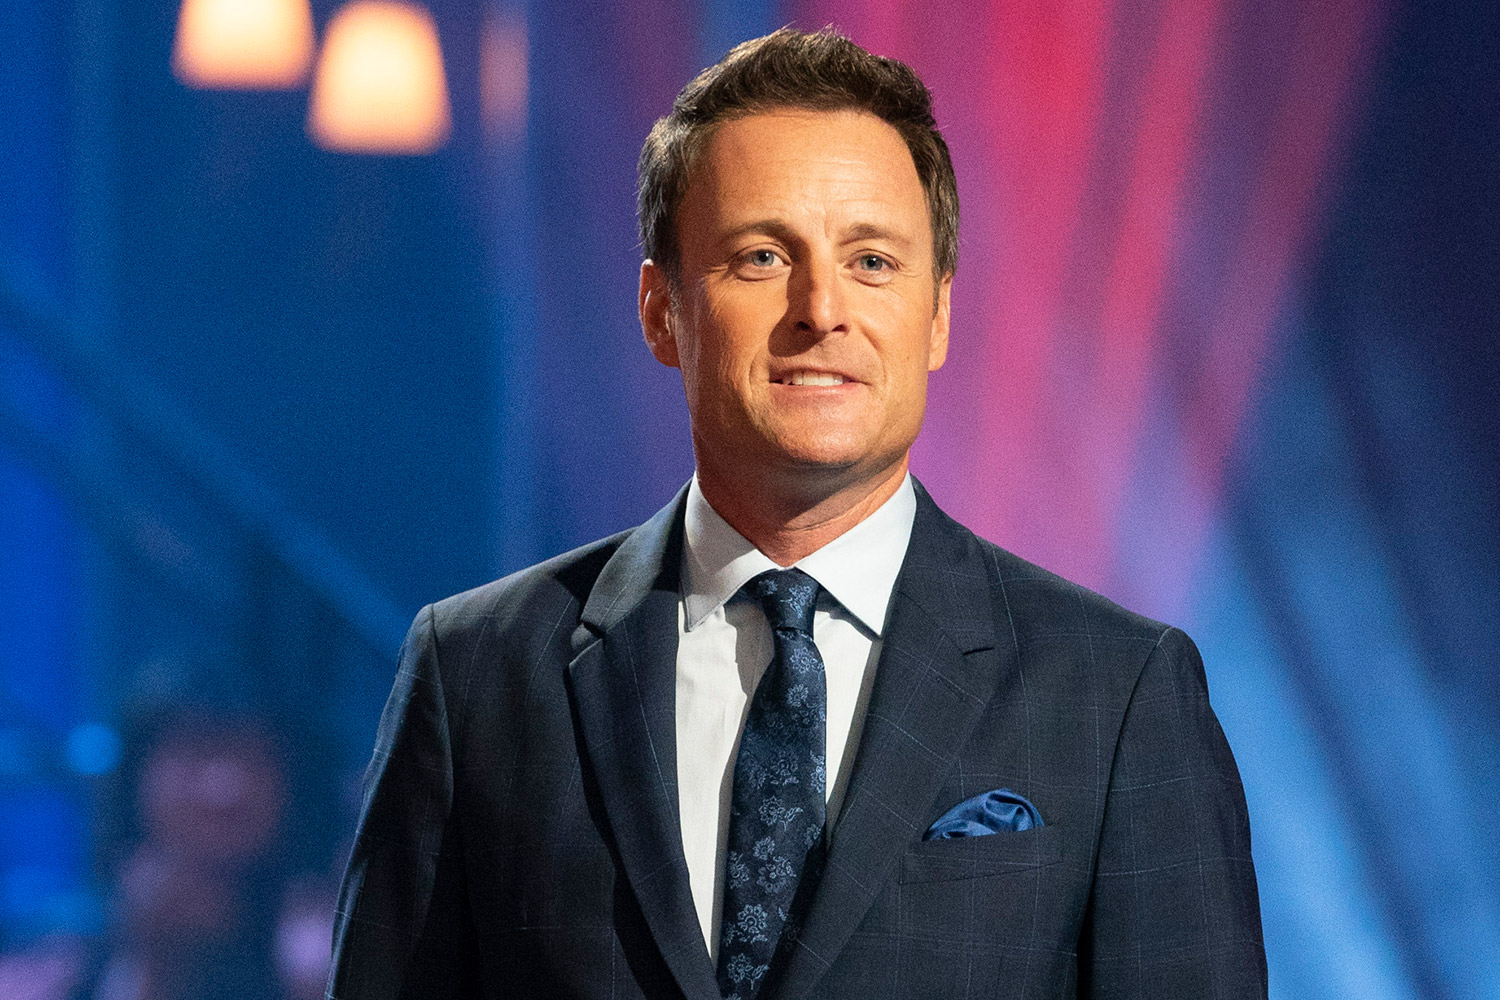 chris-harrison-will-reportedly-not-host-bachelor-in-paradise-after-controversy-heres-who-might-replace-him